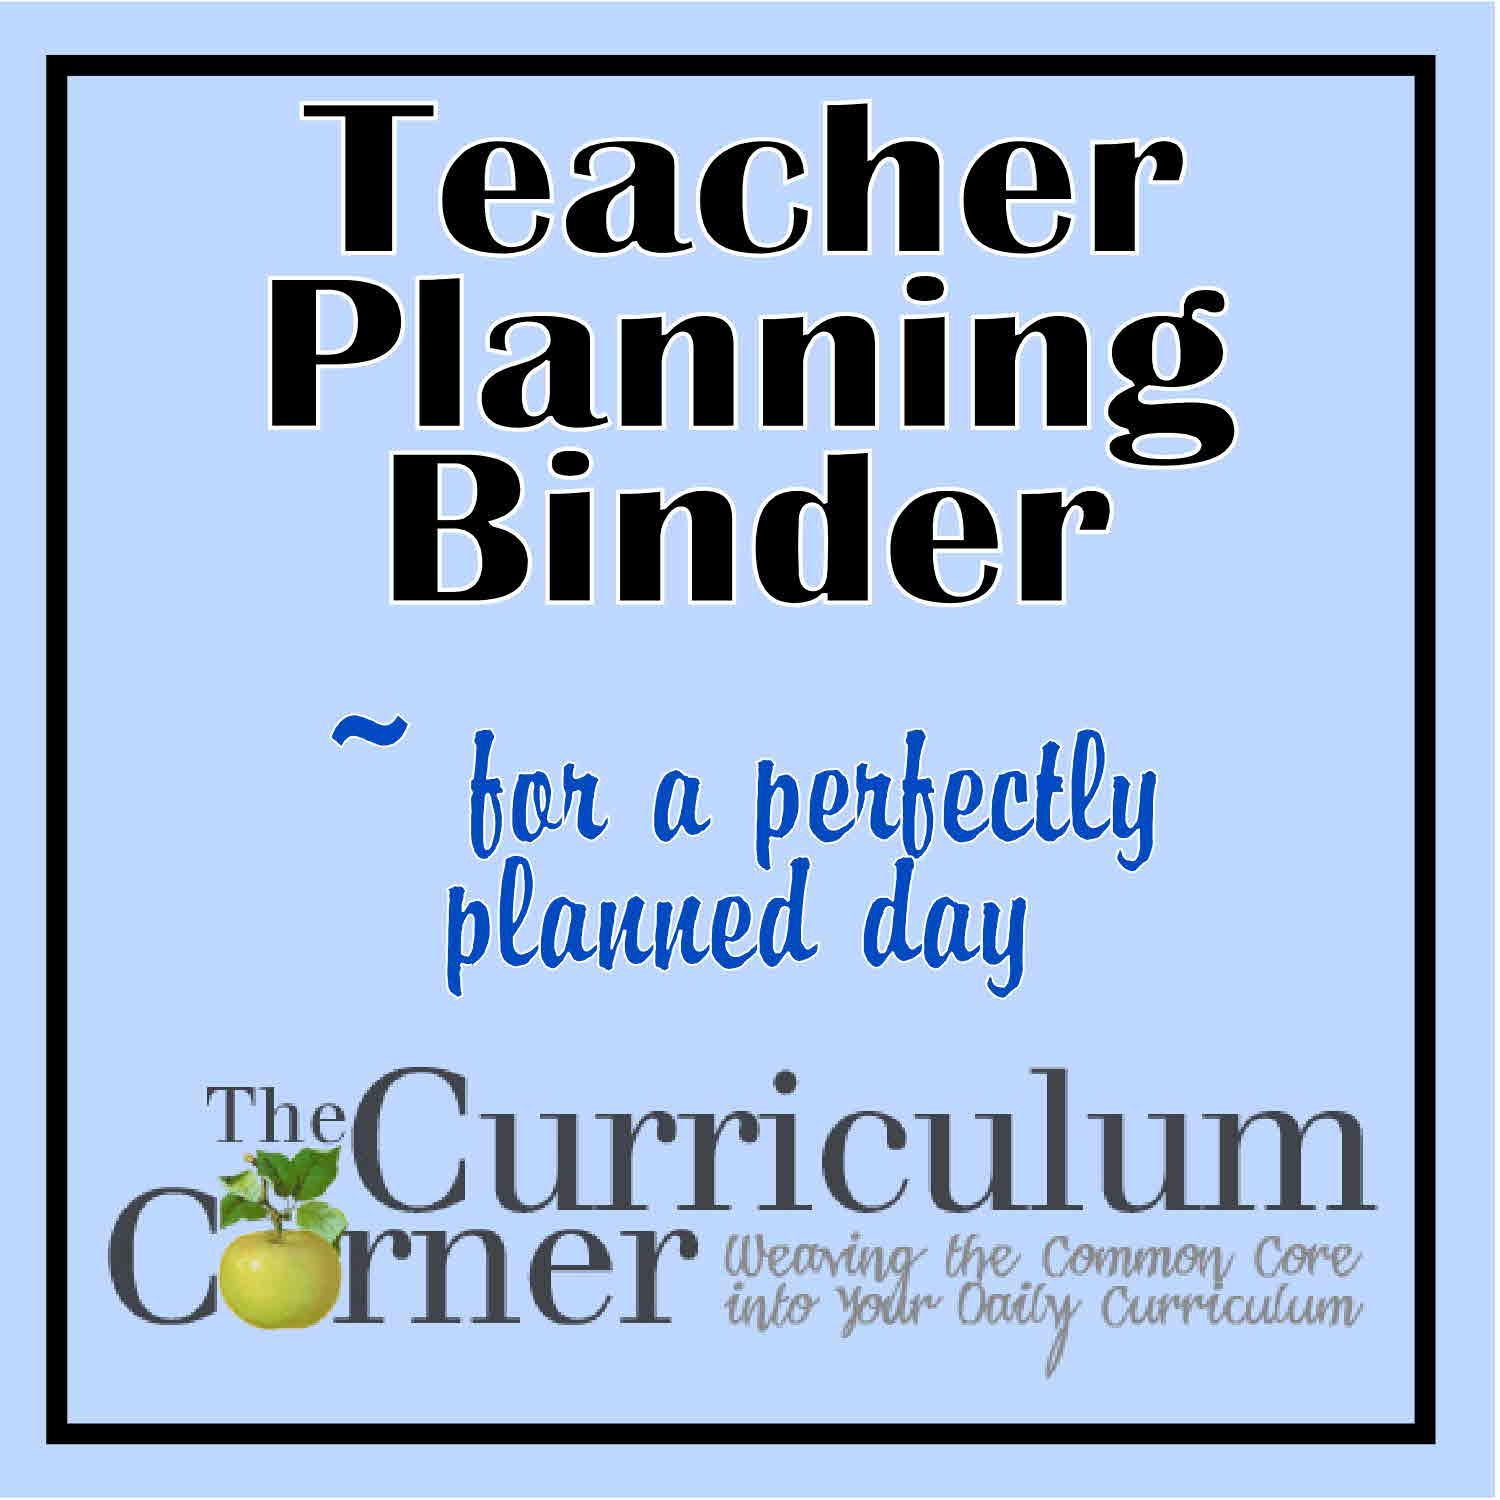 graphic regarding Teacher Binder Printables named The Curriculum Corners Coaching Regulate Binder